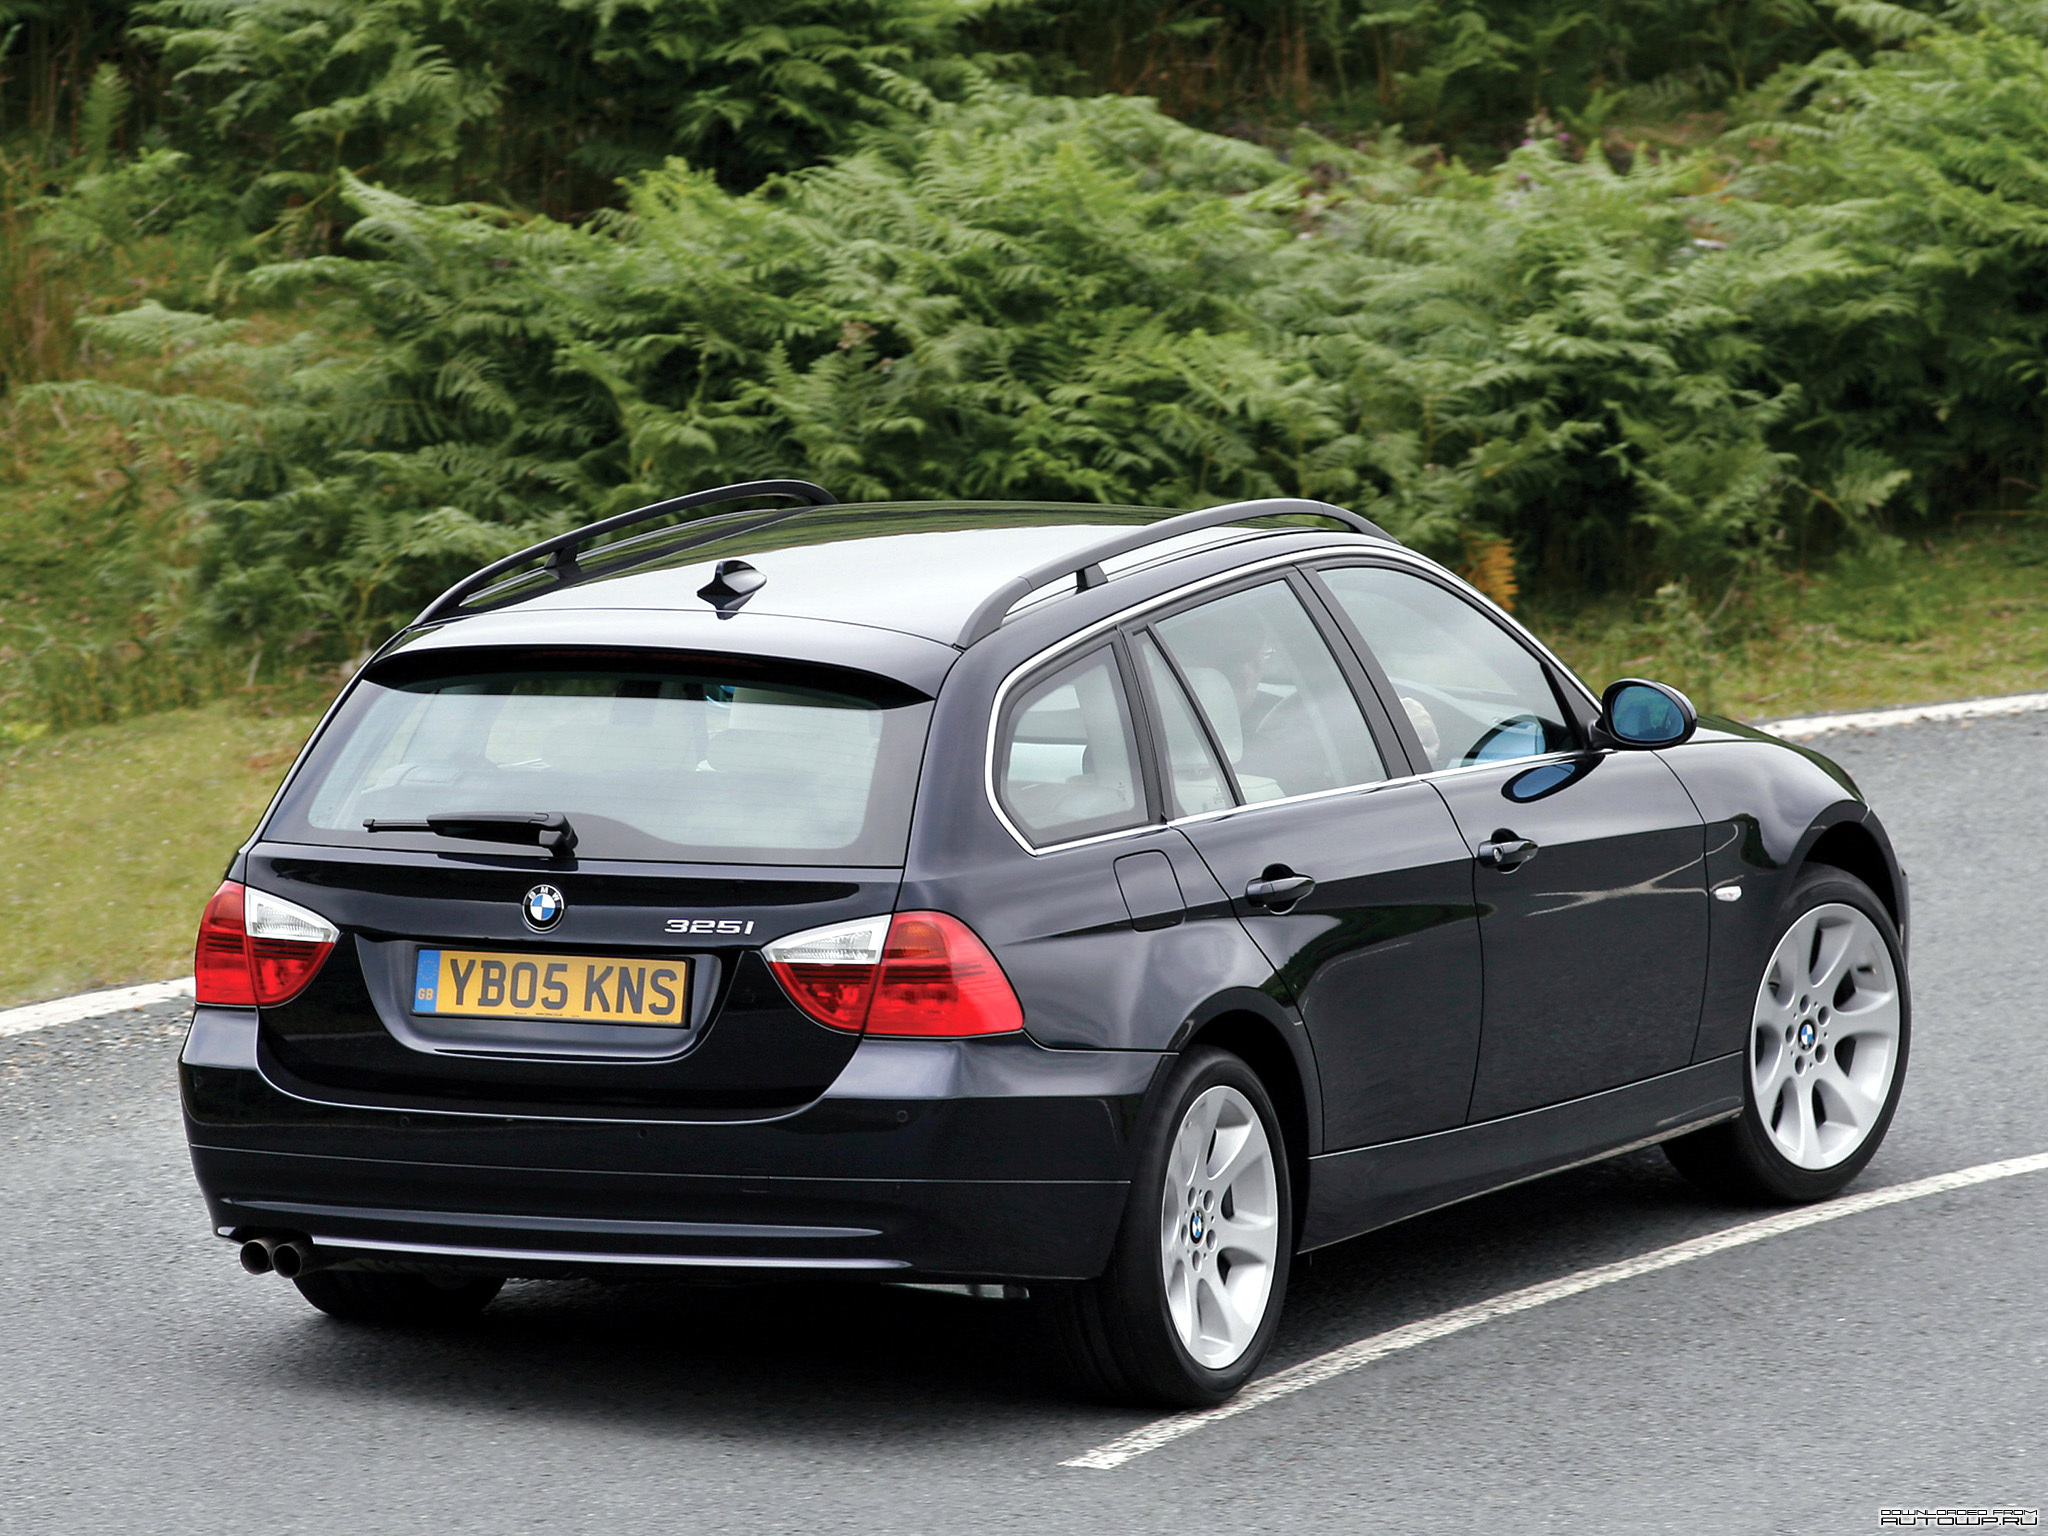 Bmw 3 Series E91 Touring Photos Photogallery With 61